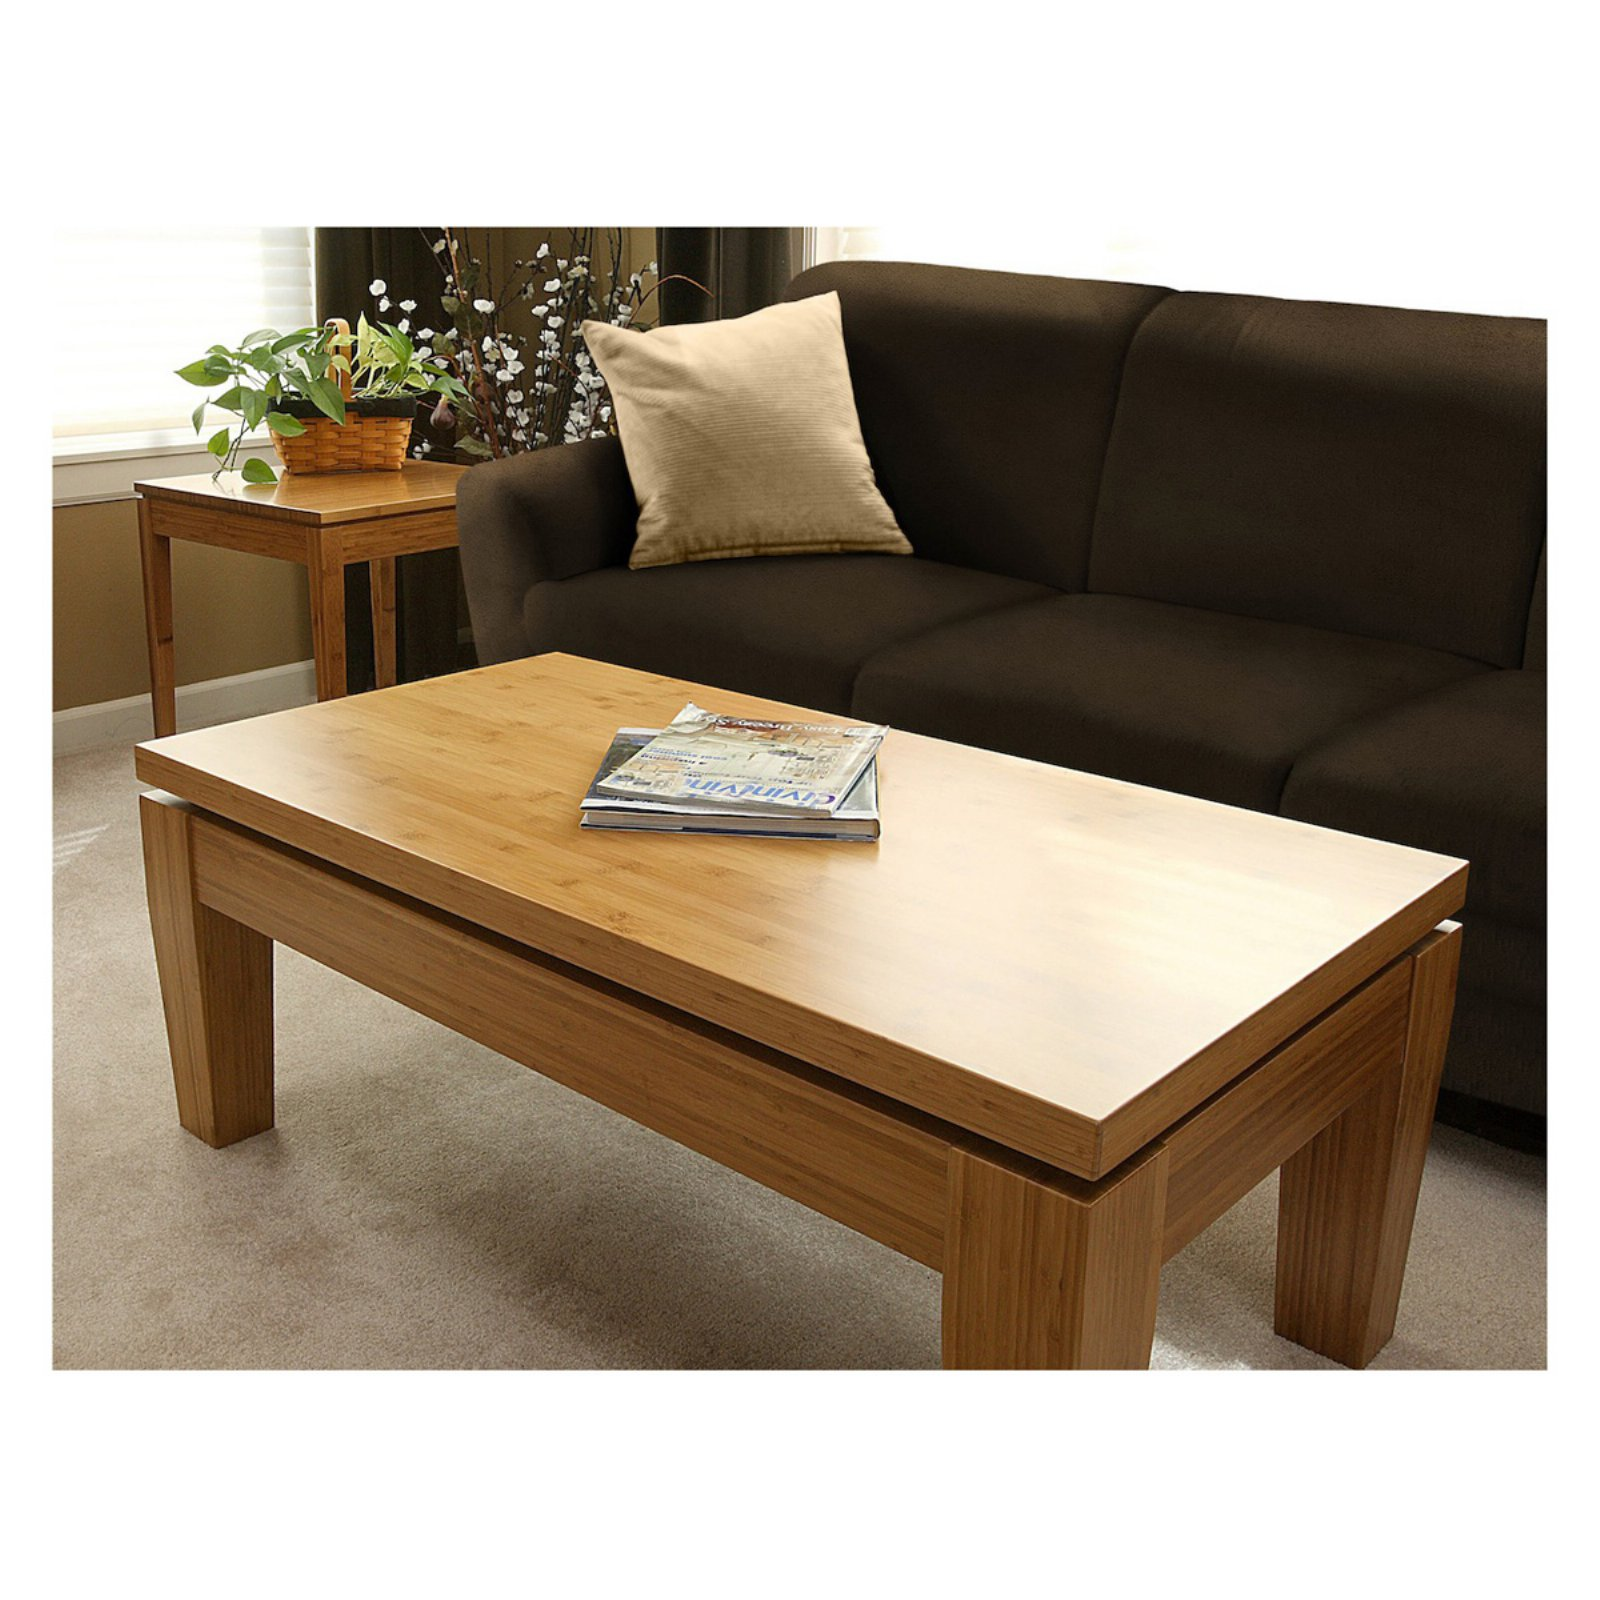 Bamboogle Rio Bamboo Large Coffee Table - Honey